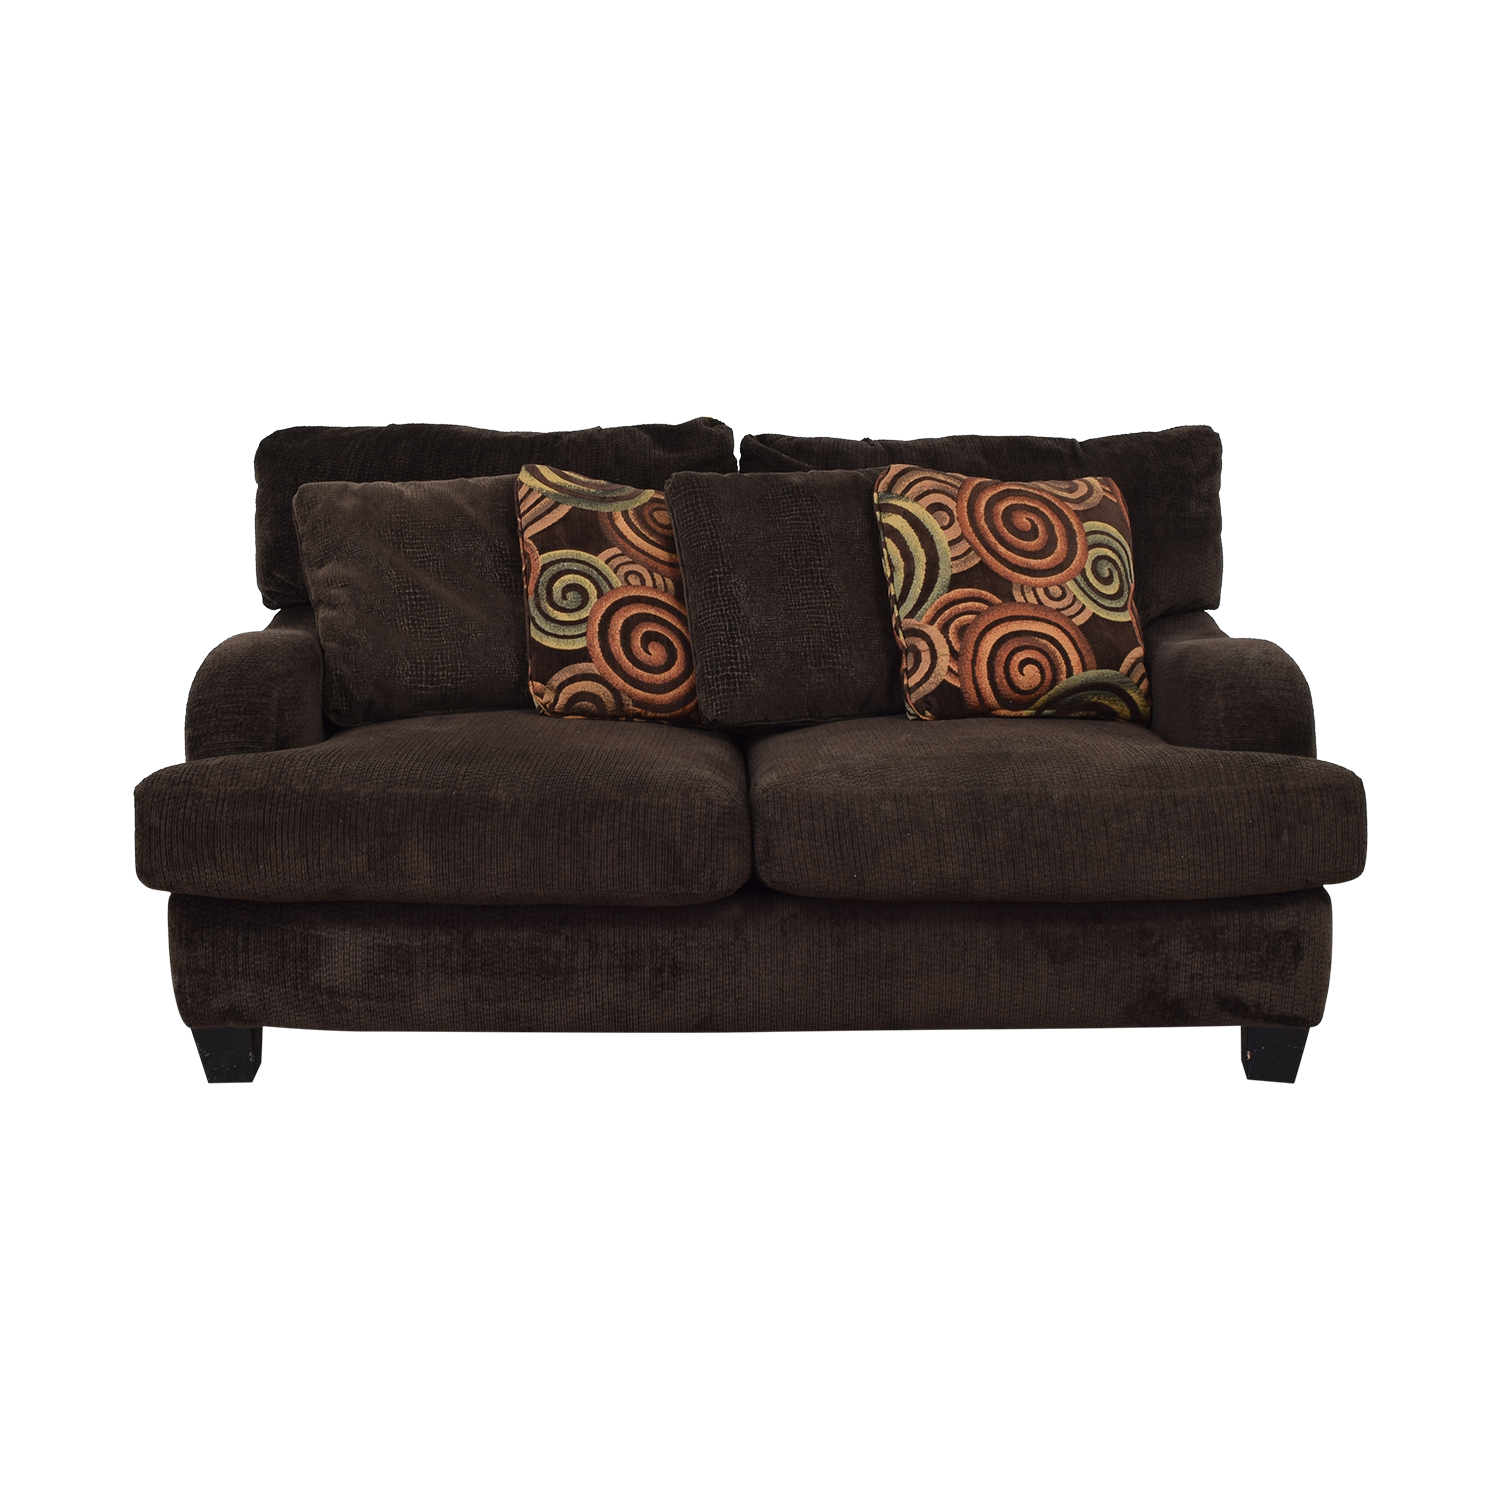 Sofa Outlet Paisley Discount Furniture For Sale